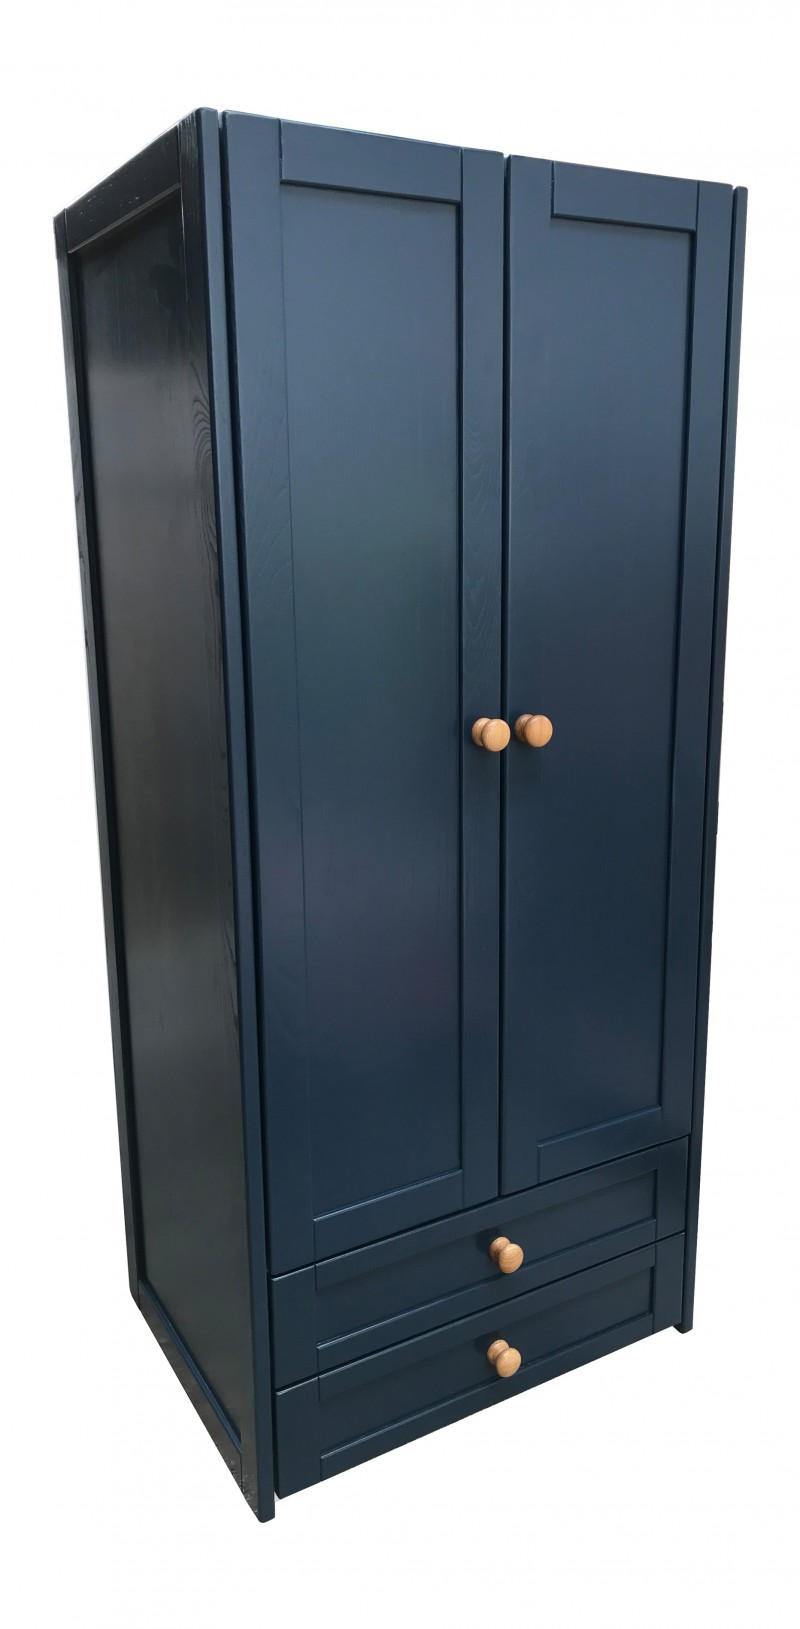 Sierra Navy Double Combi Wardrobe